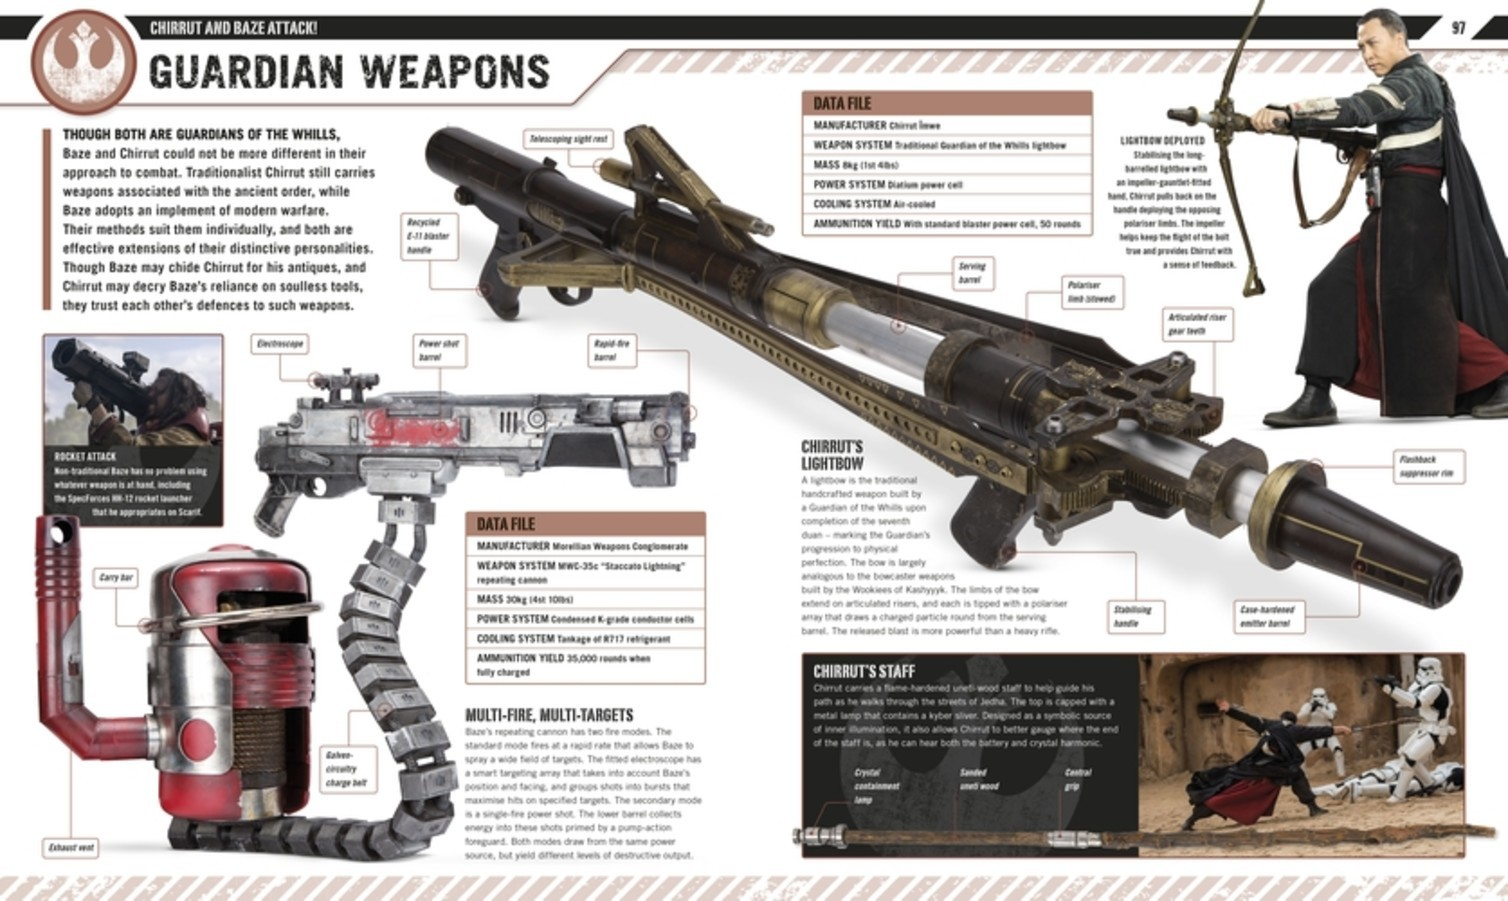 Star Wars Rogue One The Ultimate Visual Guide by Pablo Hidalgo image